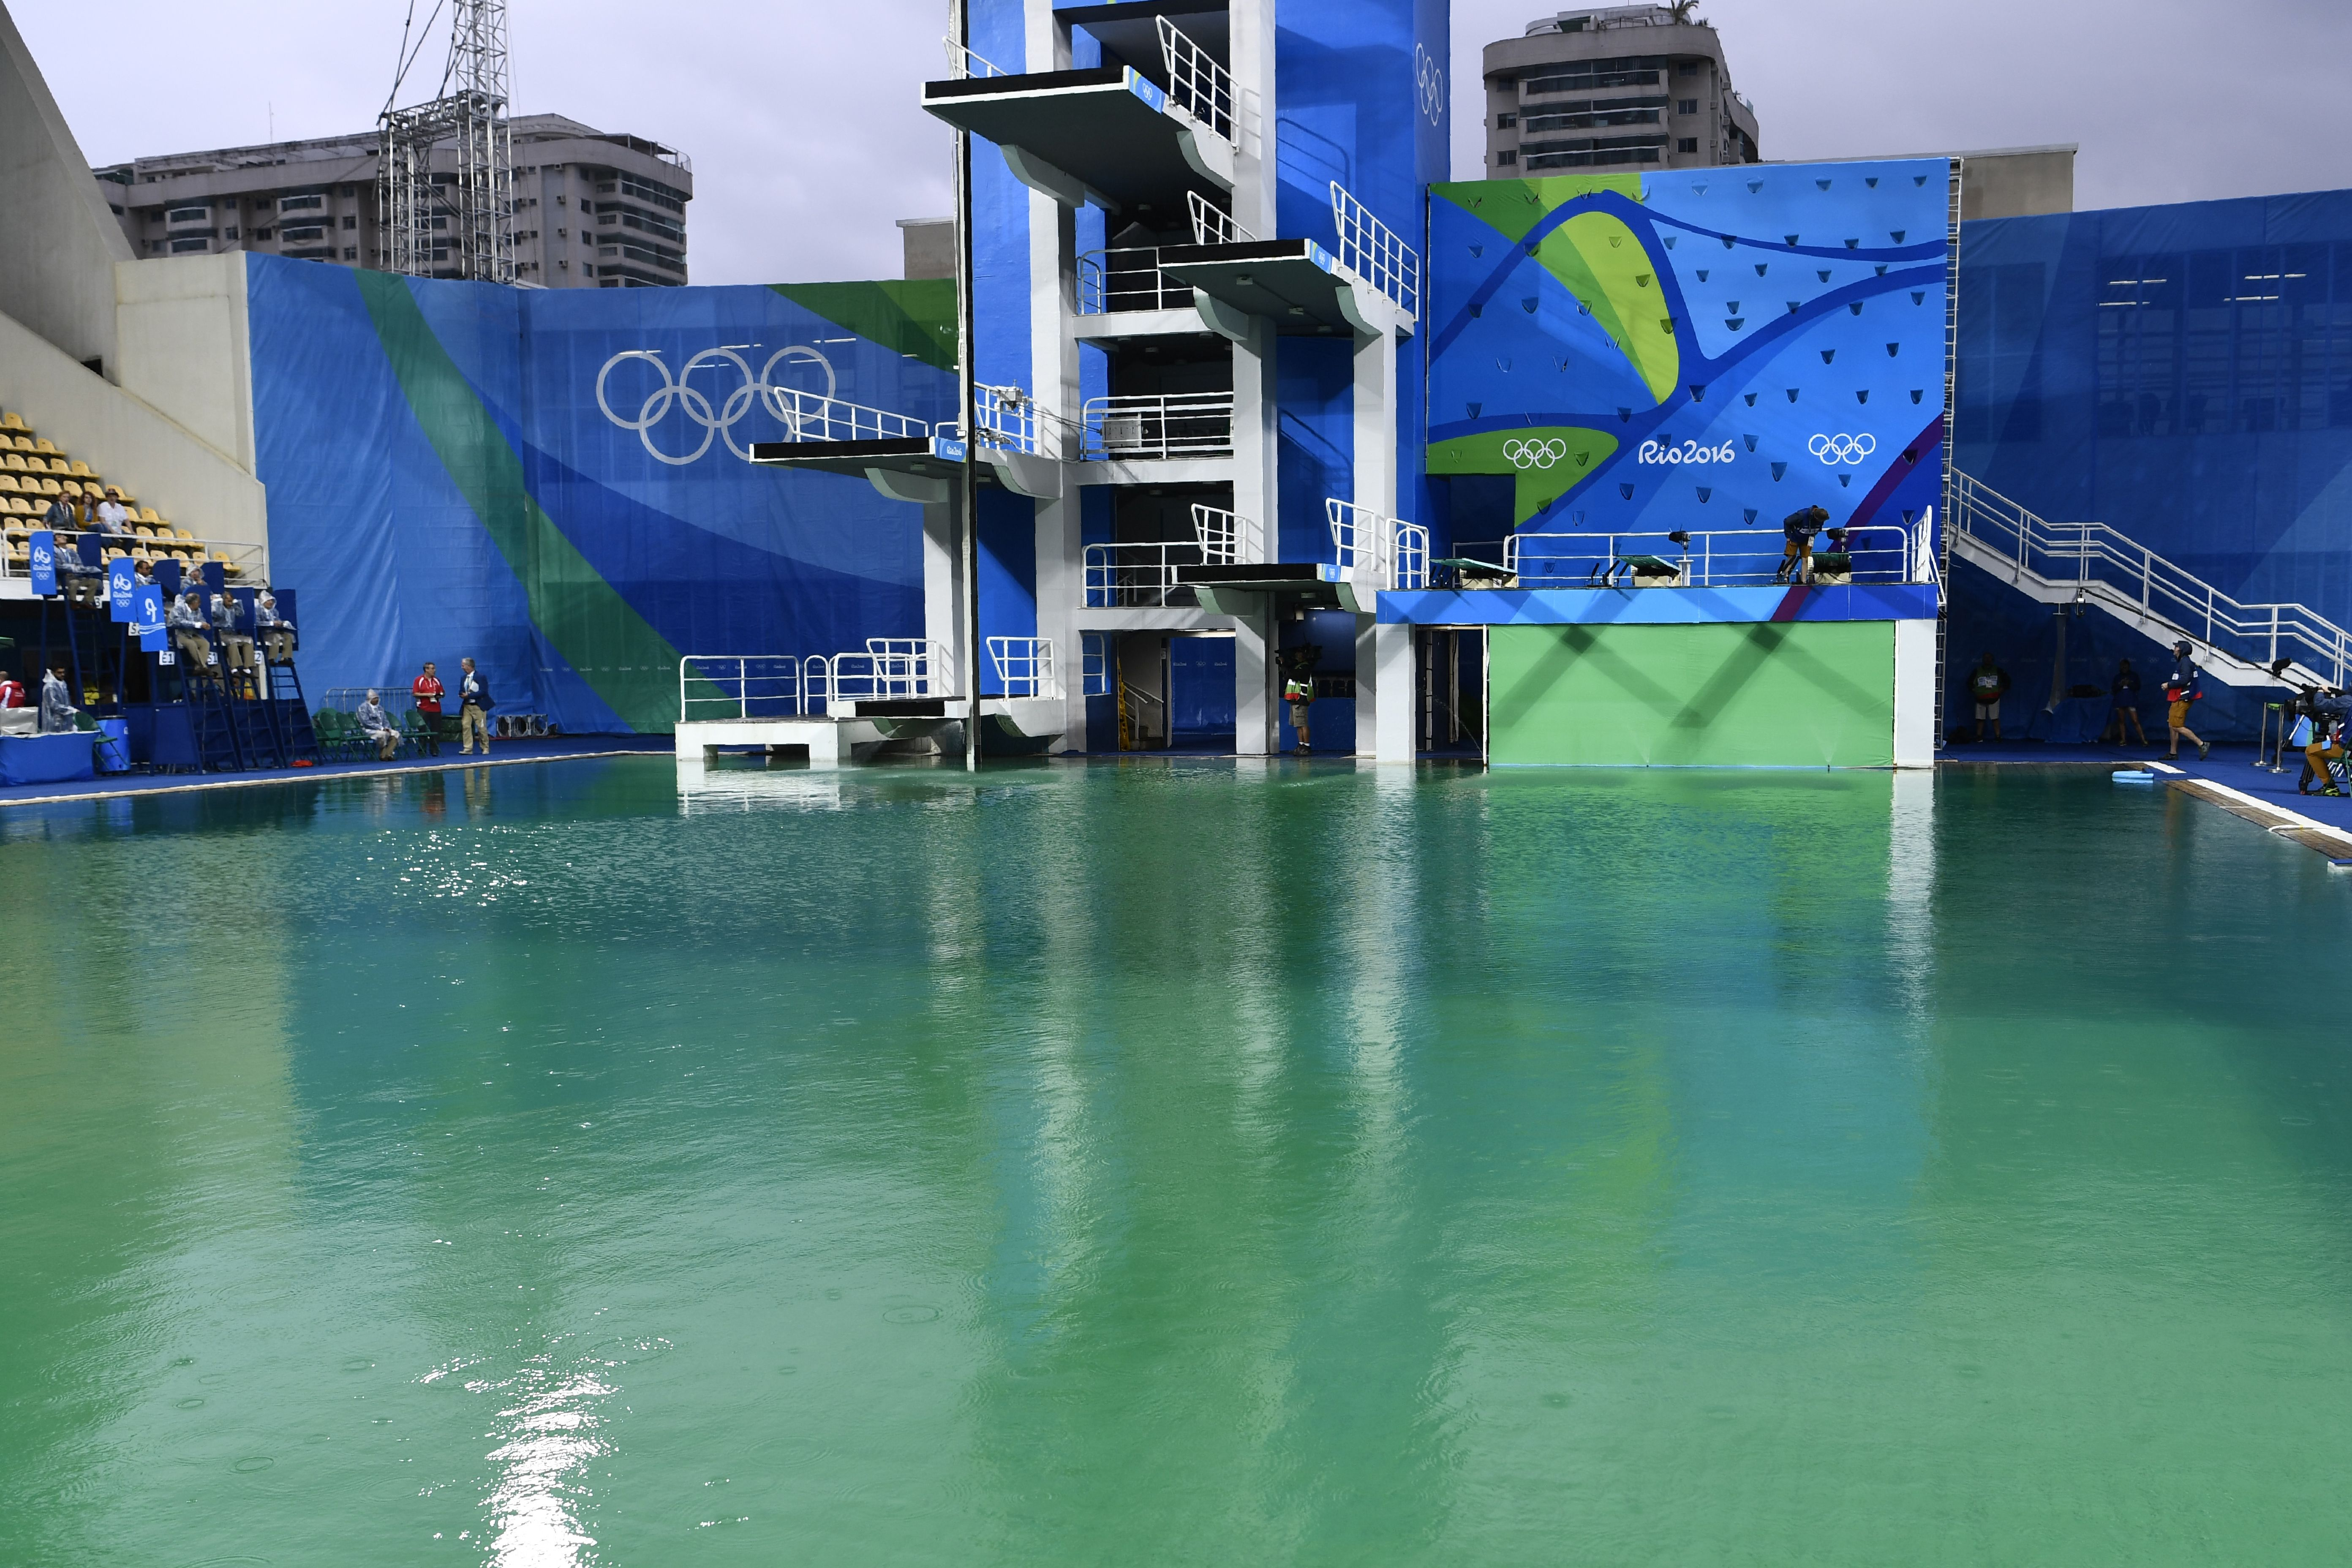 A picture taken on Aug. 10 at the Maria Lenk Aquatics Stadium in Rio de Janeiro shows the diving pool of the Rio 2016 Olympic Games.